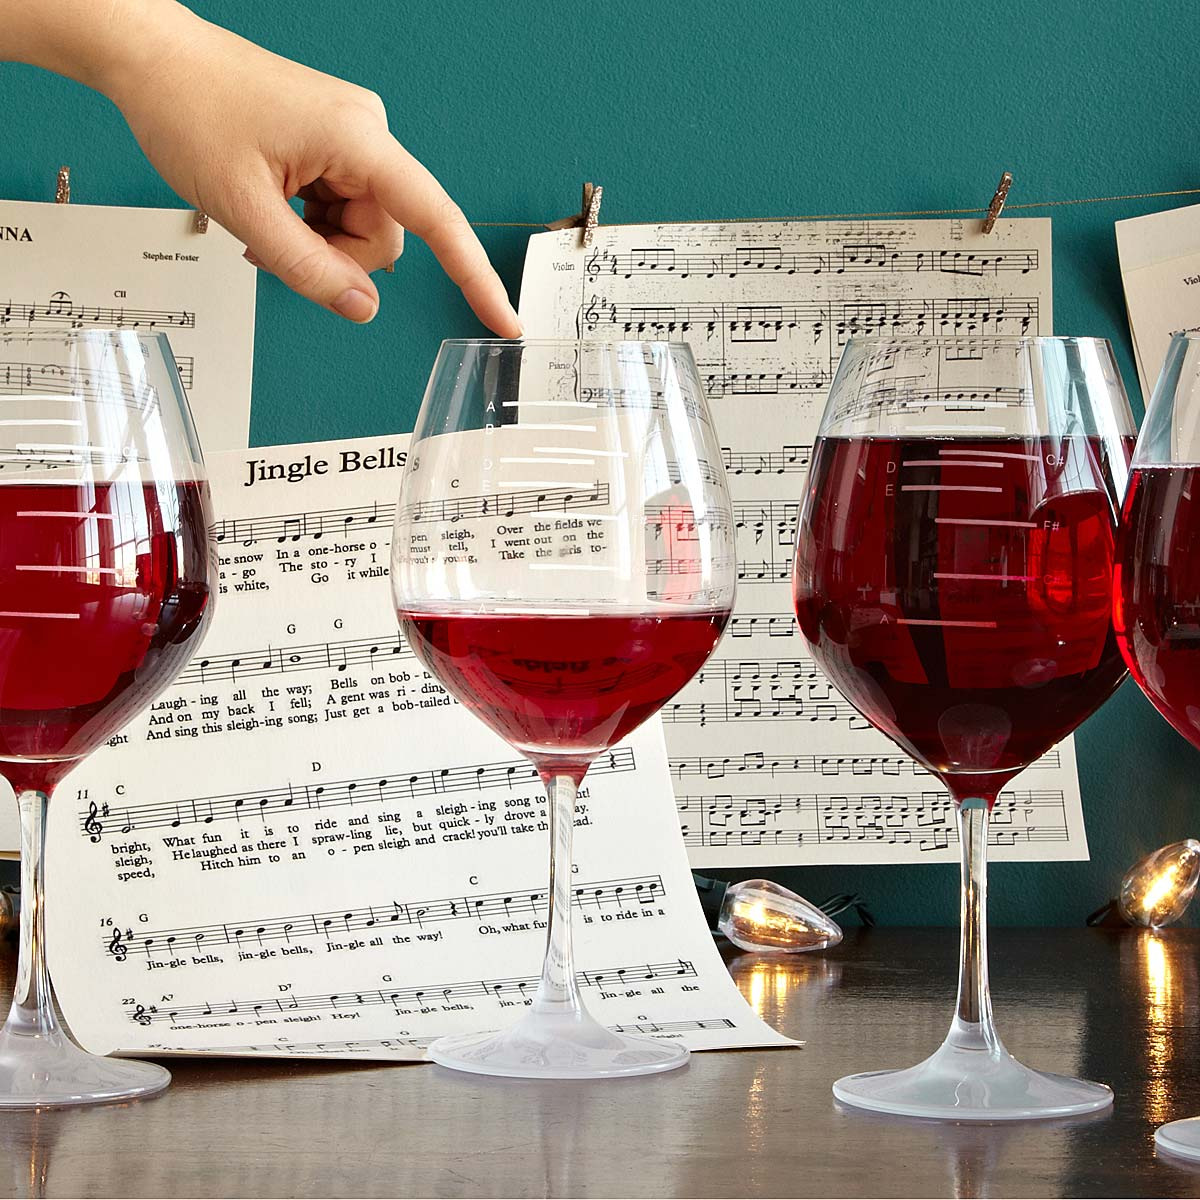 ae55f17dc71 Major Scale Musical Wine Glasses - Set of 2 | Etched Red Wine Glasses,  Music, tune | UncommonGoods